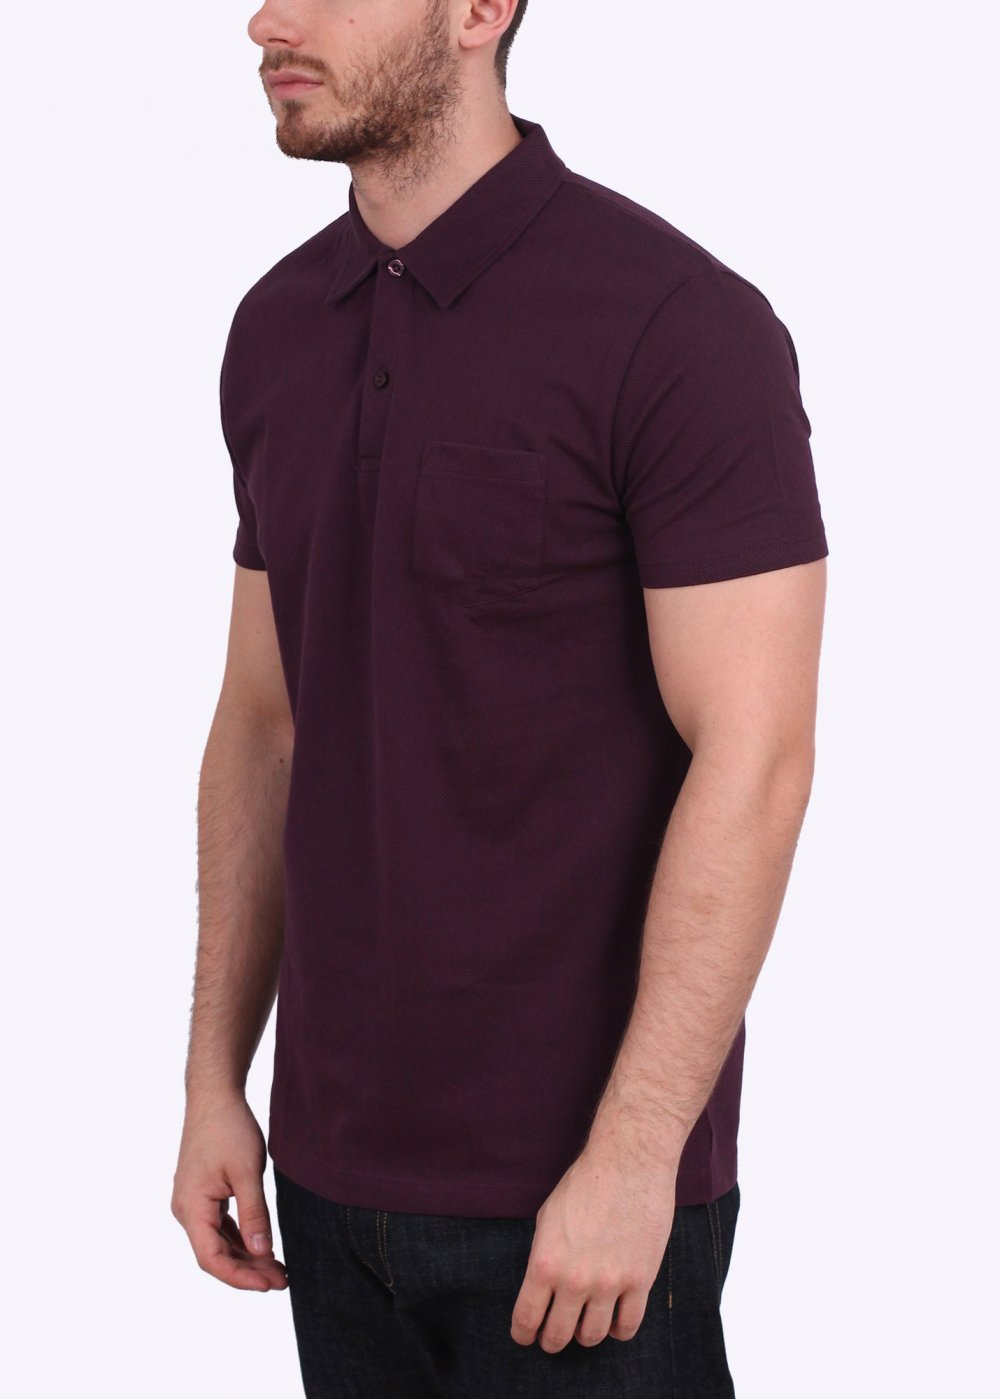 Find Sunspel men's fashion at sfathiquah.mler Brands on Sale · New Items on Sale Daily · Shop Fresh Trends on Sale31,+ followers on Twitter.